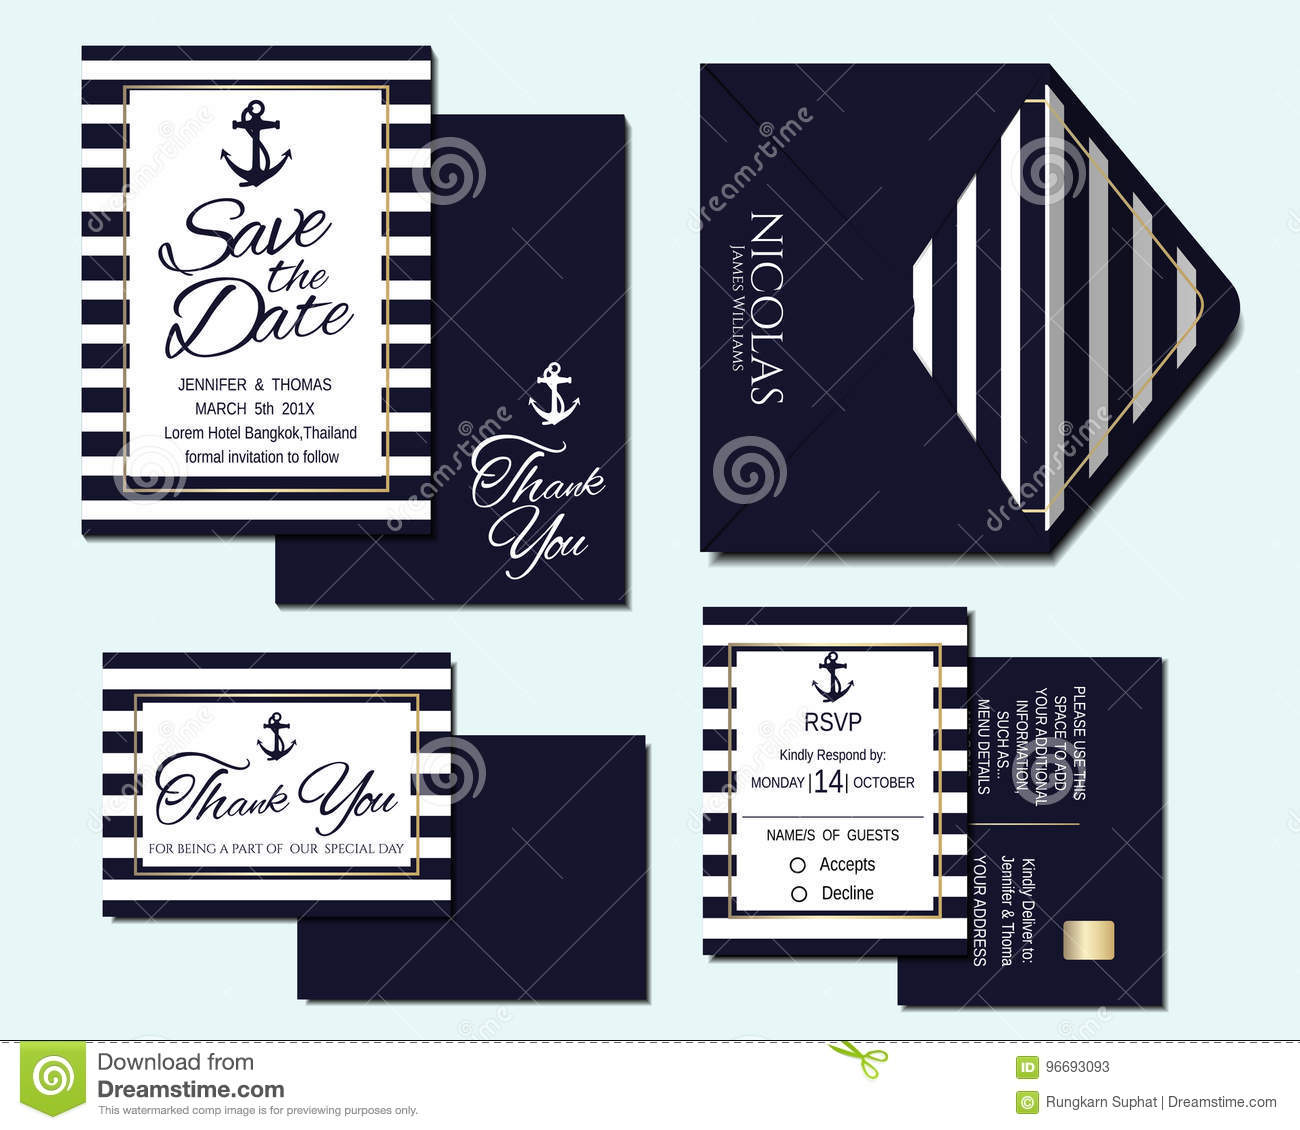 Carte Marine Thailande.Ensemble De Carte Nautique D Invitation De Mariage Illustration De